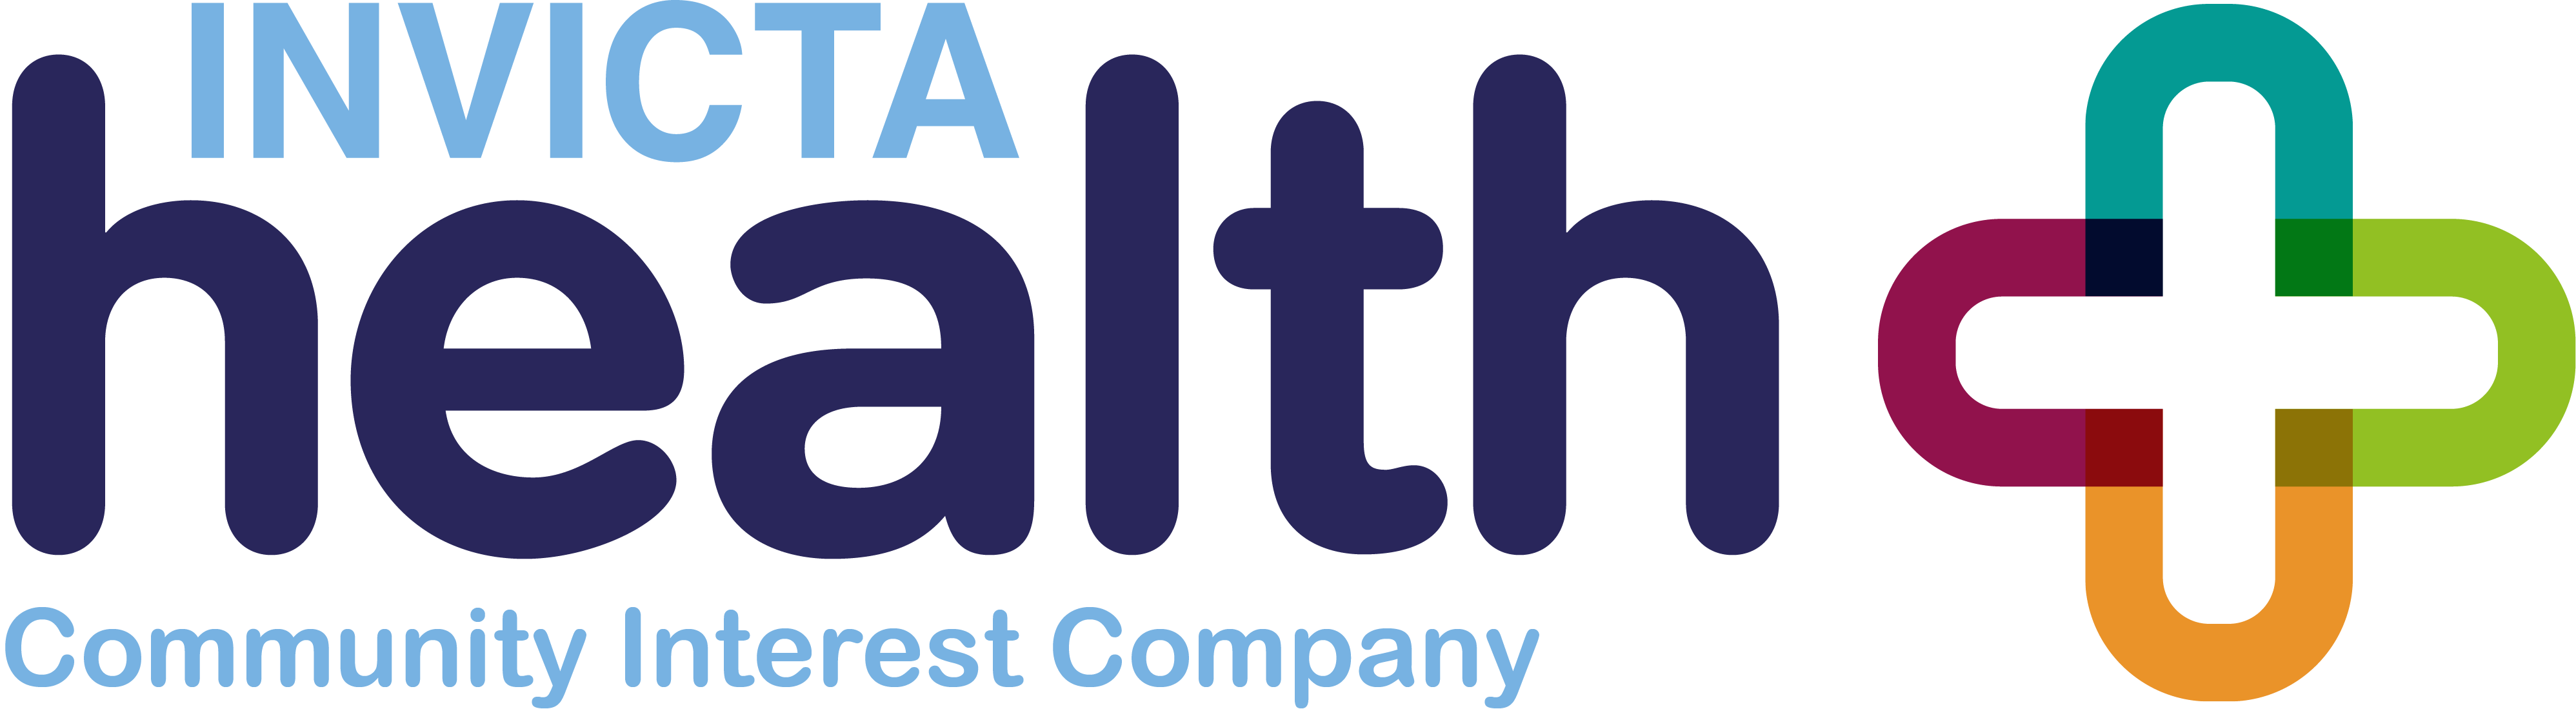 Invicta Health